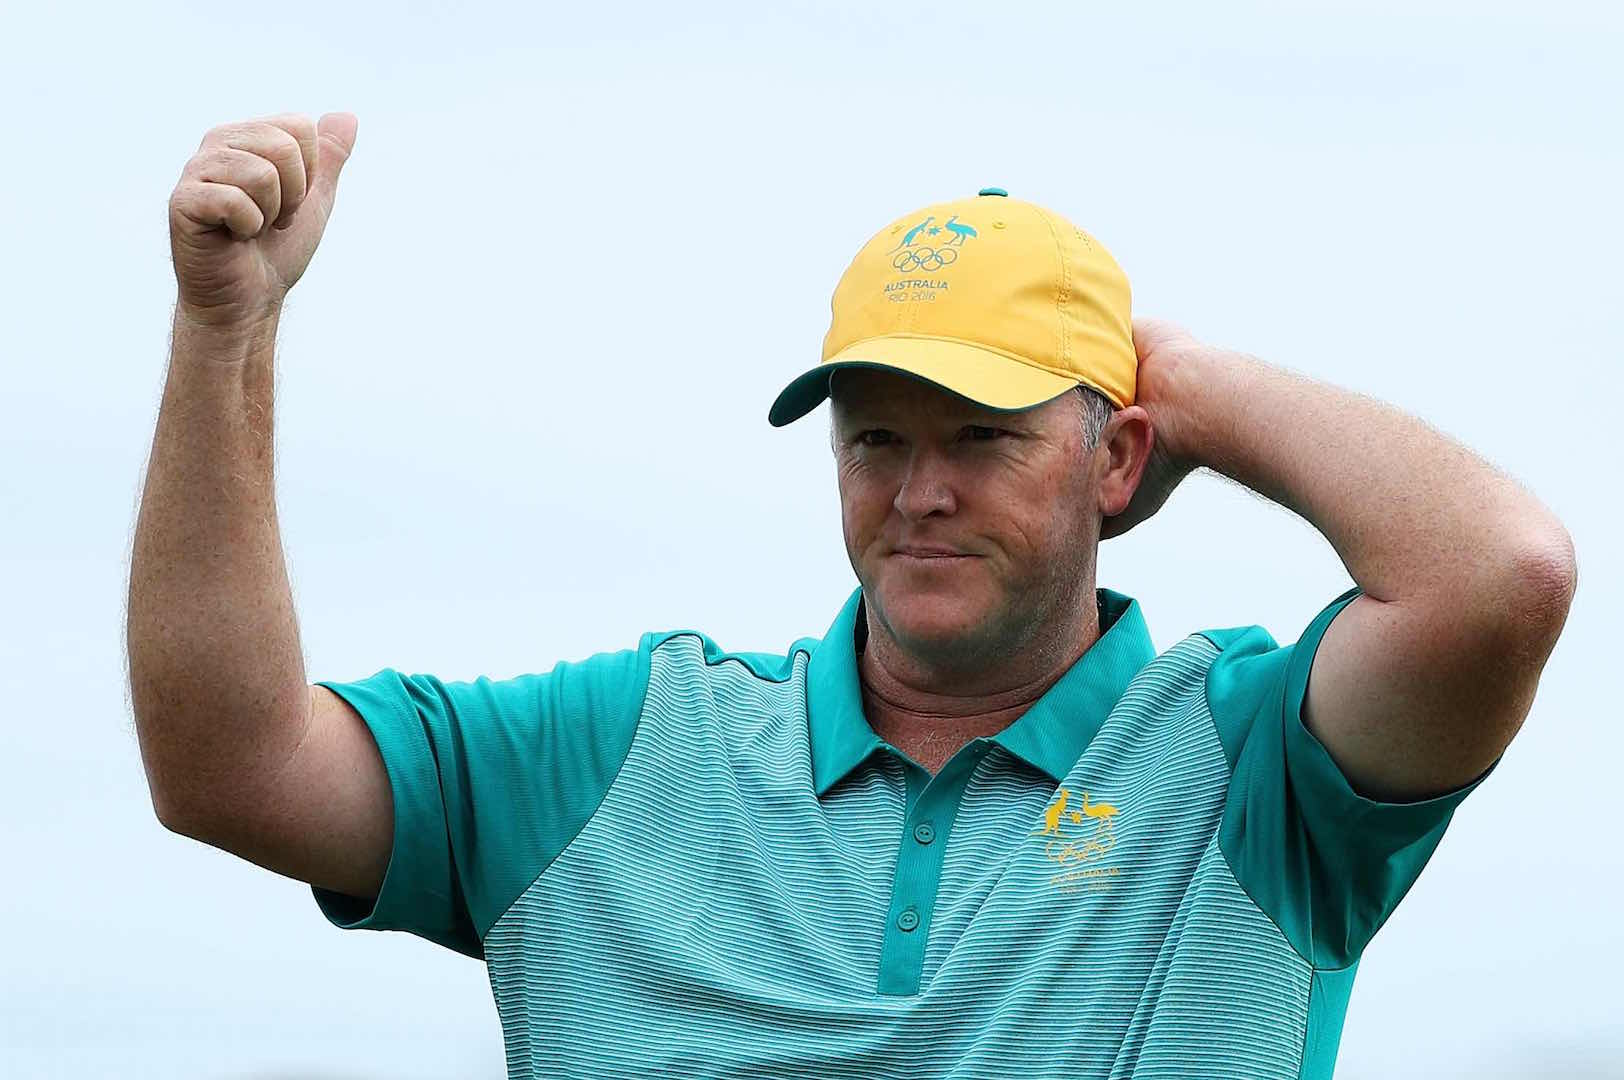 Marcus Fraser leads the Olympic golf